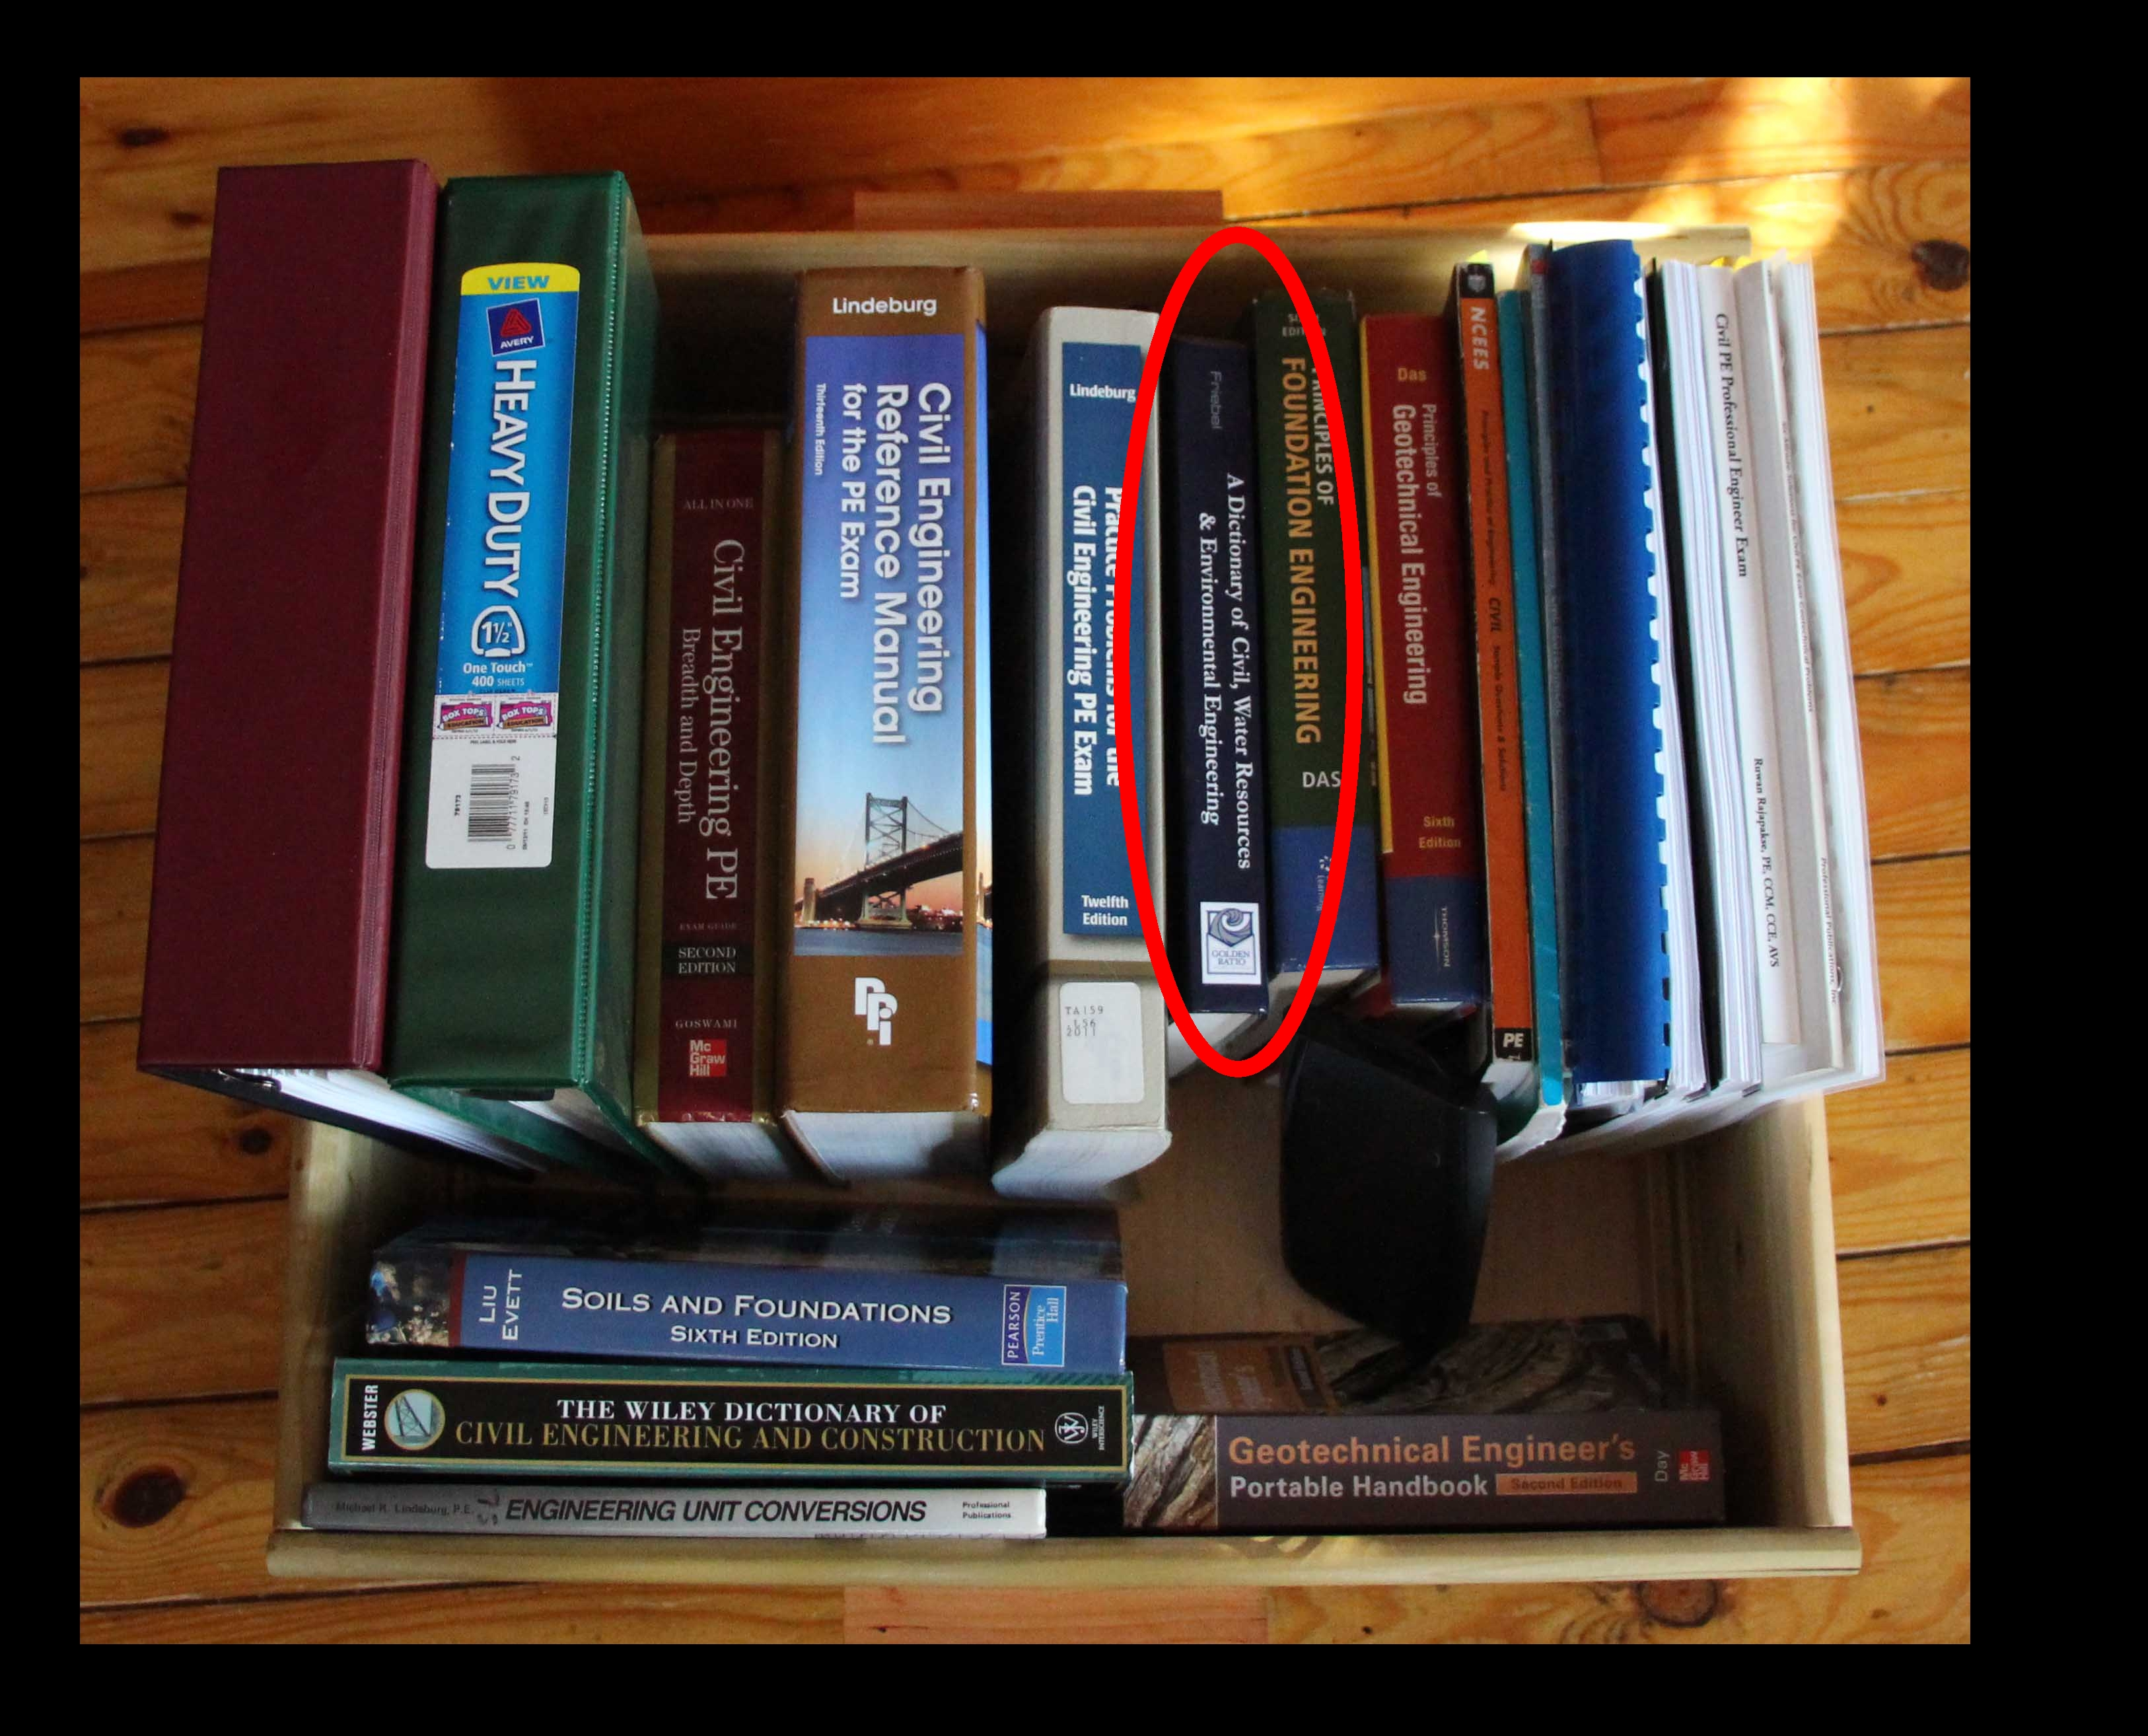 Best method to carry books into PE exam Golden Ratio  : Traviscart Best Ergonomic Chairs <strong>Back Pain</strong> from goldenratiopublishing.com size 3252 x 2628 jpeg 1485kB